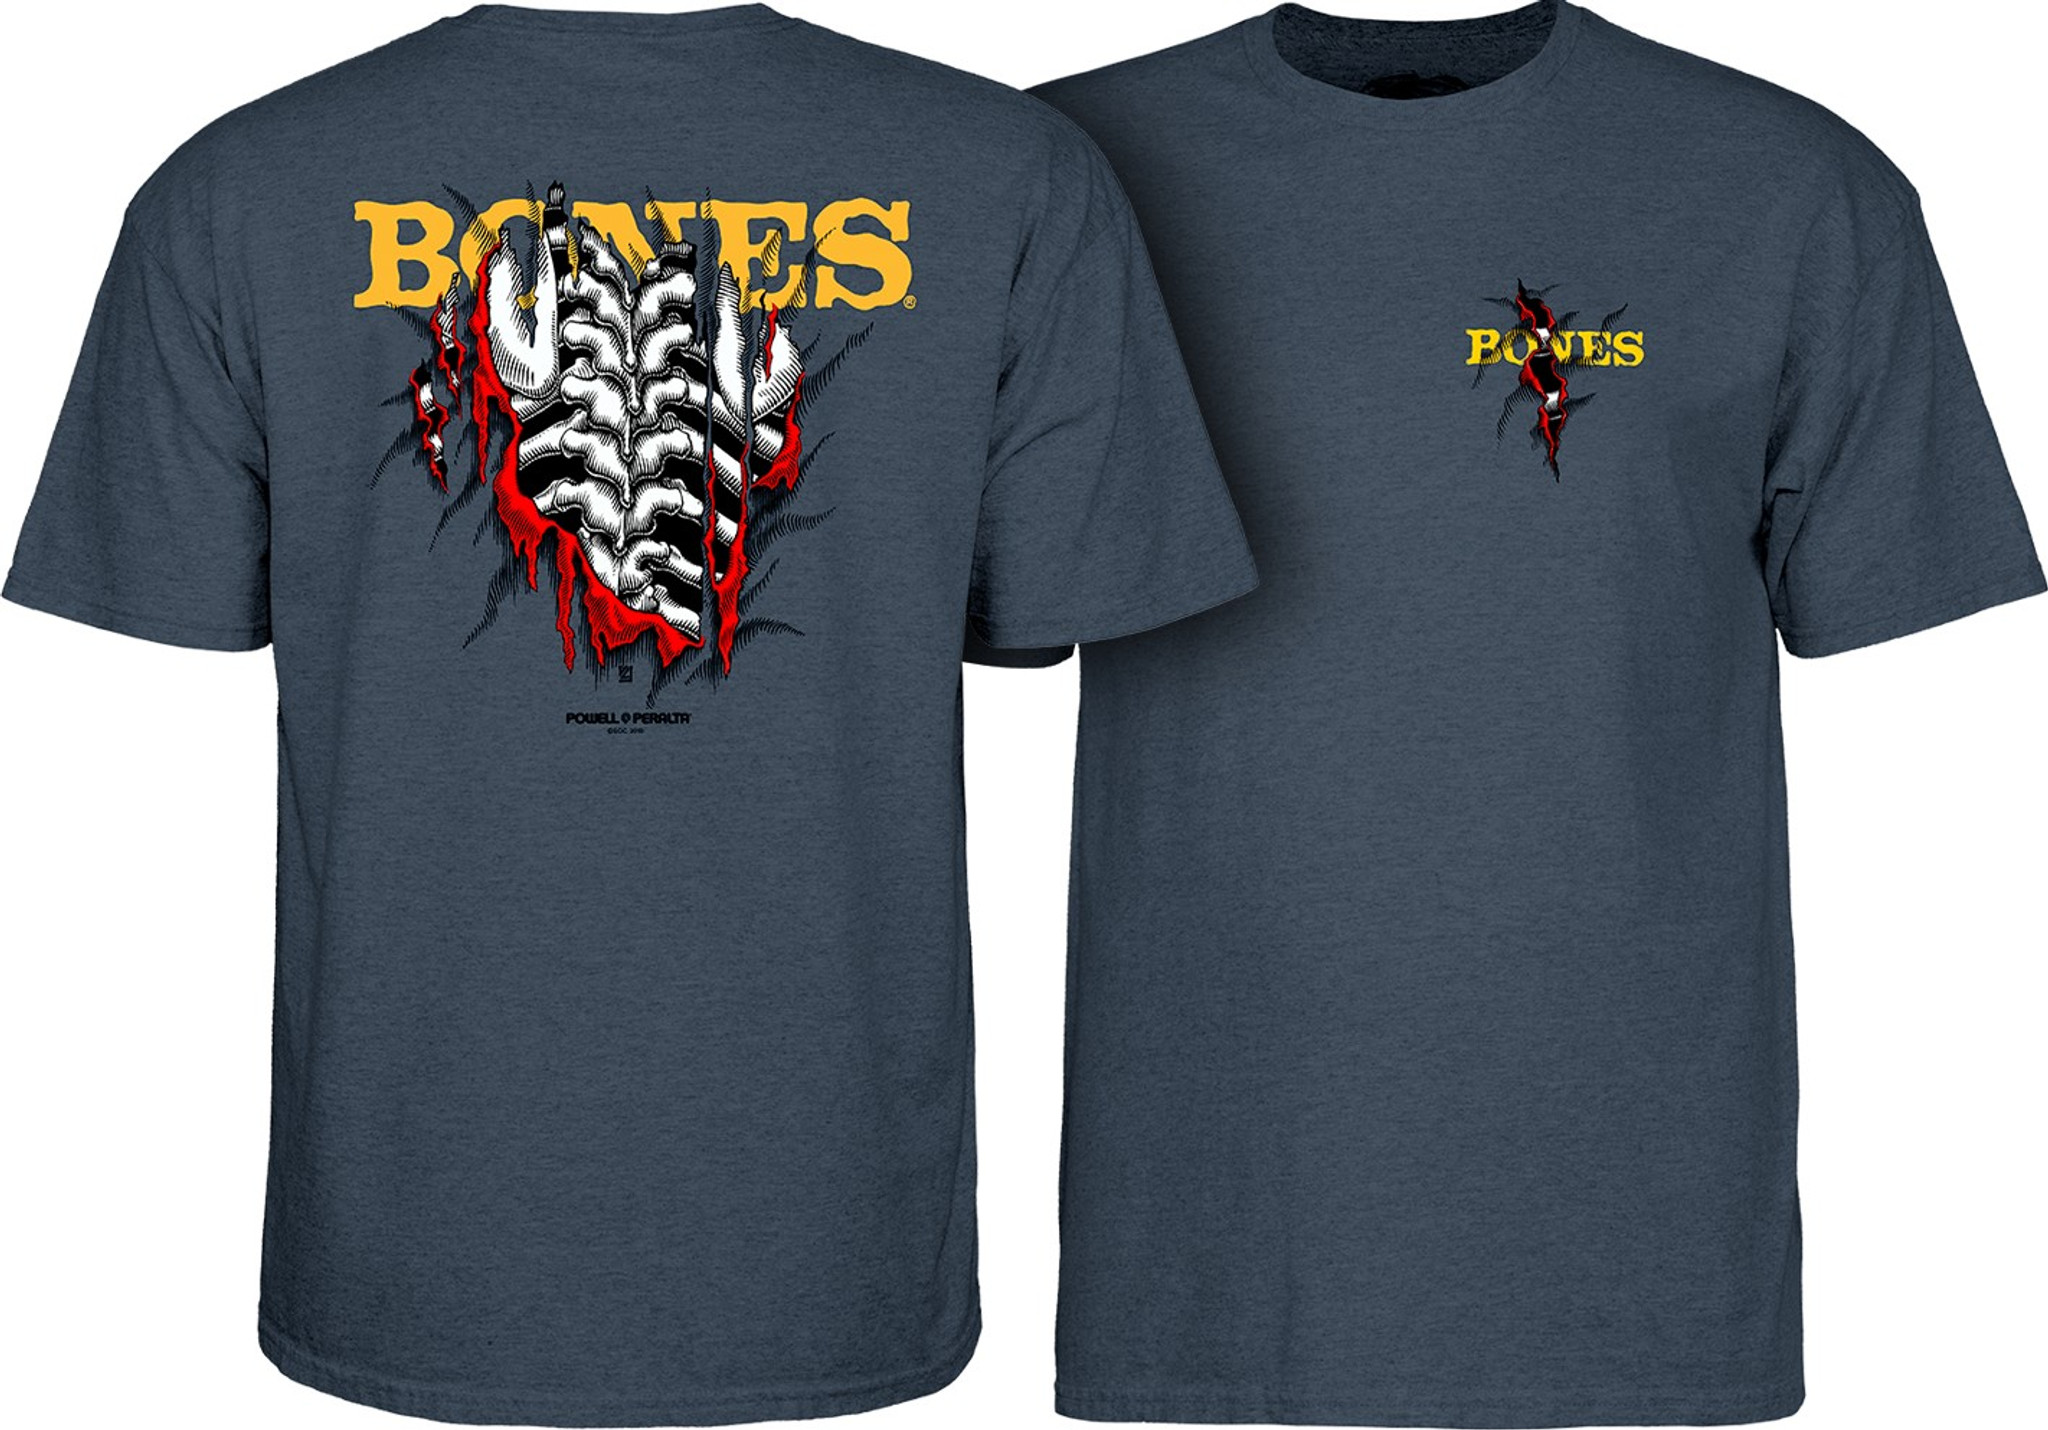 3154841a8597 Powell Peralta Bones Shred T-Shirt Old School Skateboarding Tee